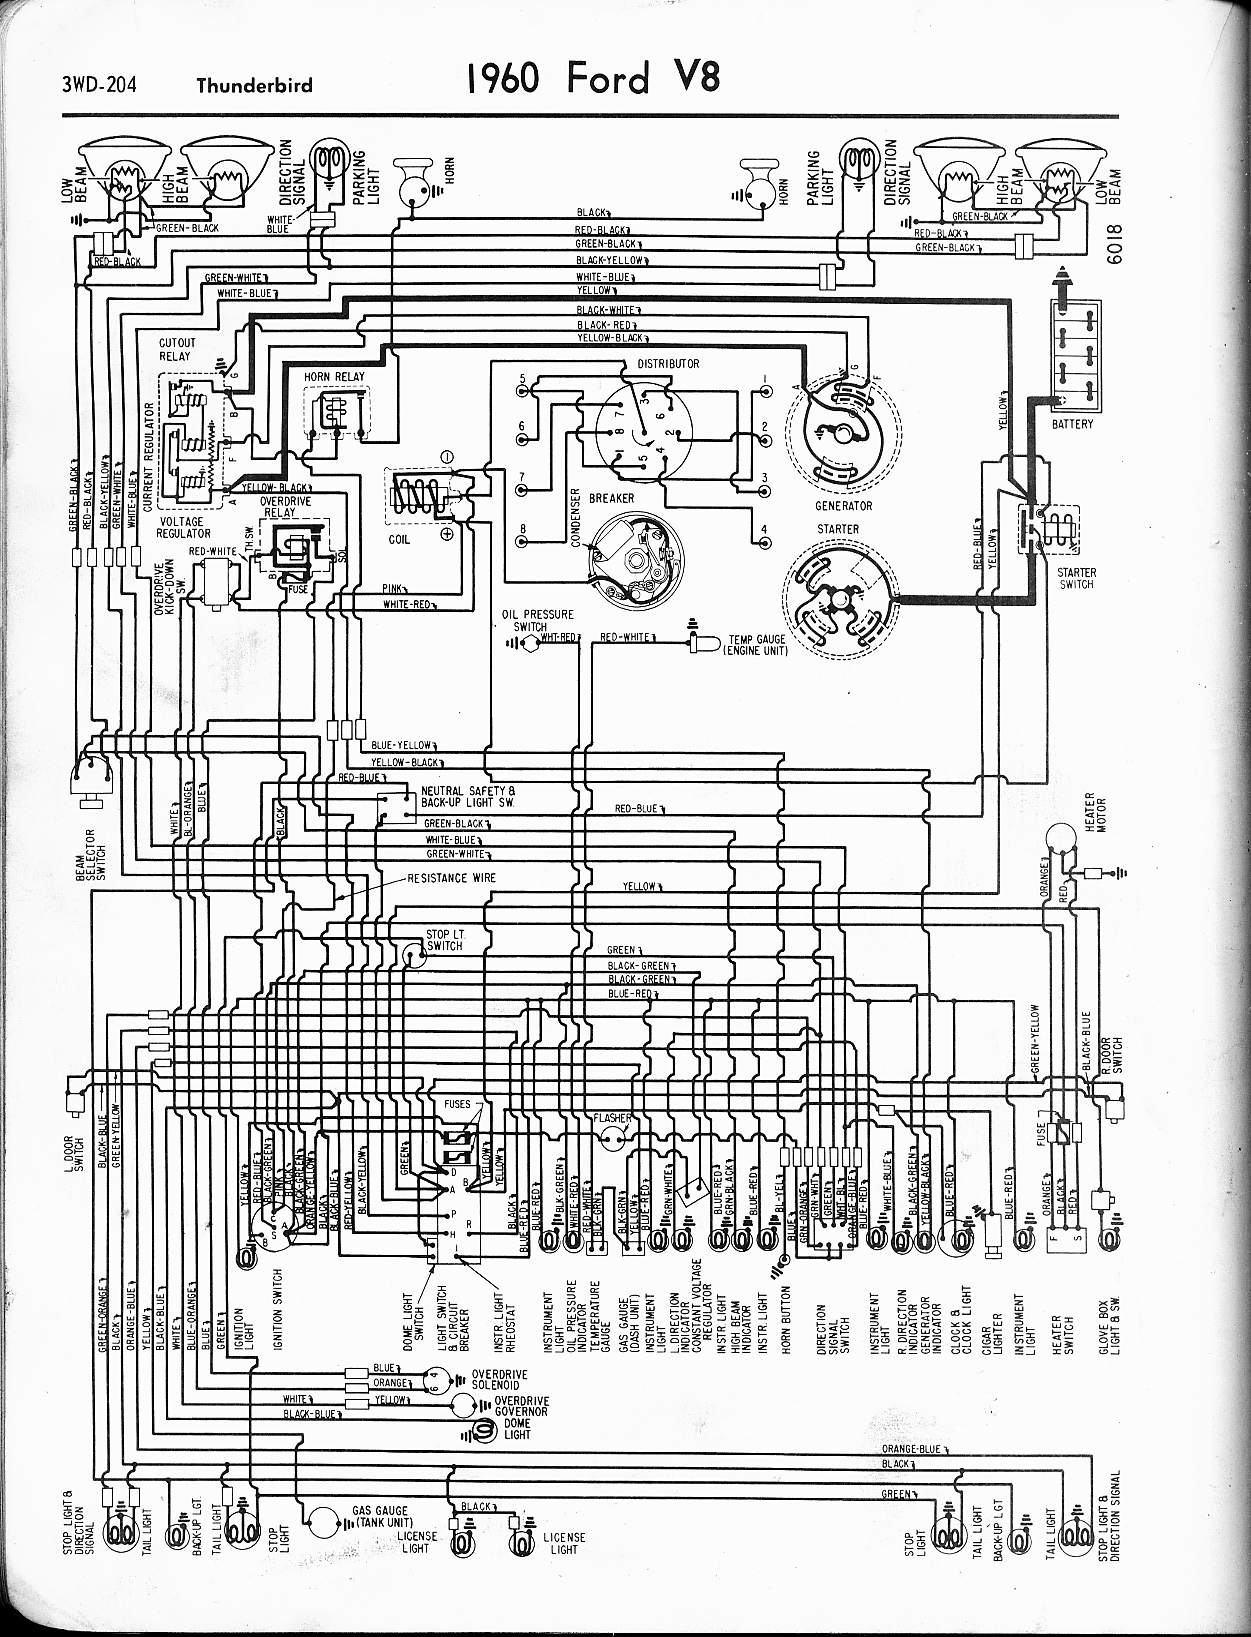 hight resolution of ac wiring diagram ford thunderbird wiring diagram sheet ford thunderbird wiring diagram 65 ford thunderbird wiring